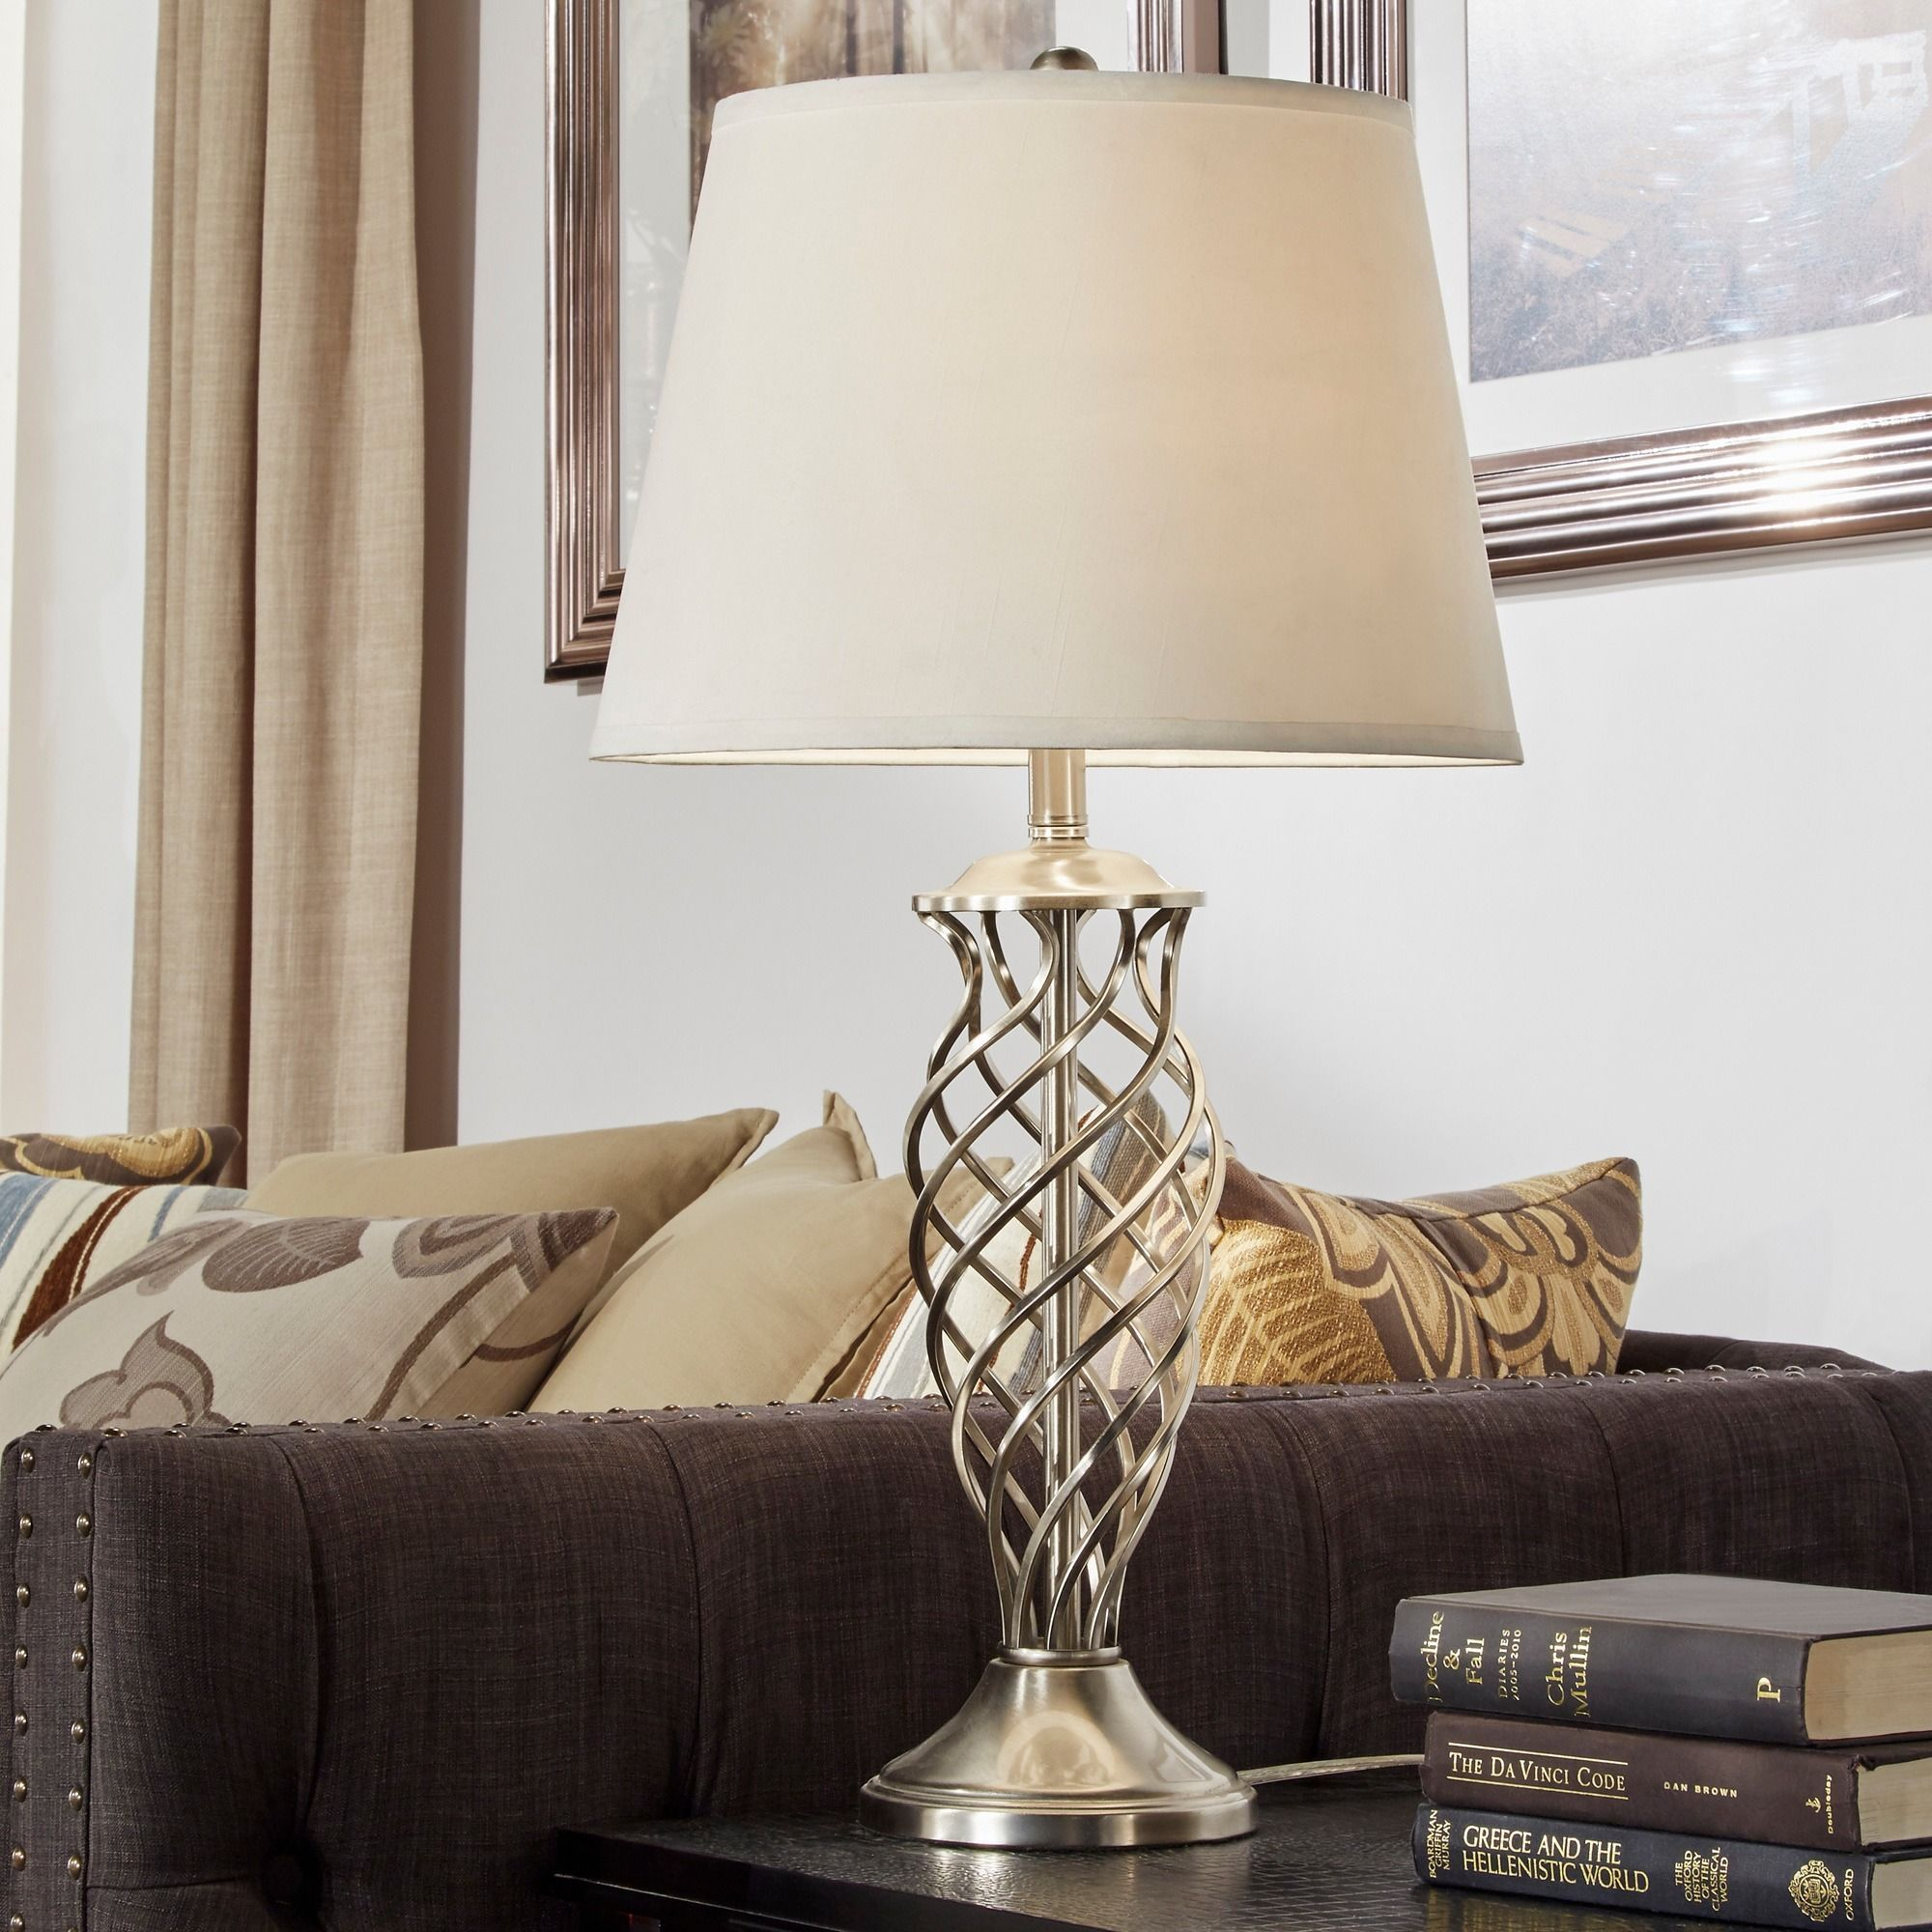 This lamps body is a curved design metallic frame with open space in the middle this showstopping lamp features a contoured base and contemporary fabric